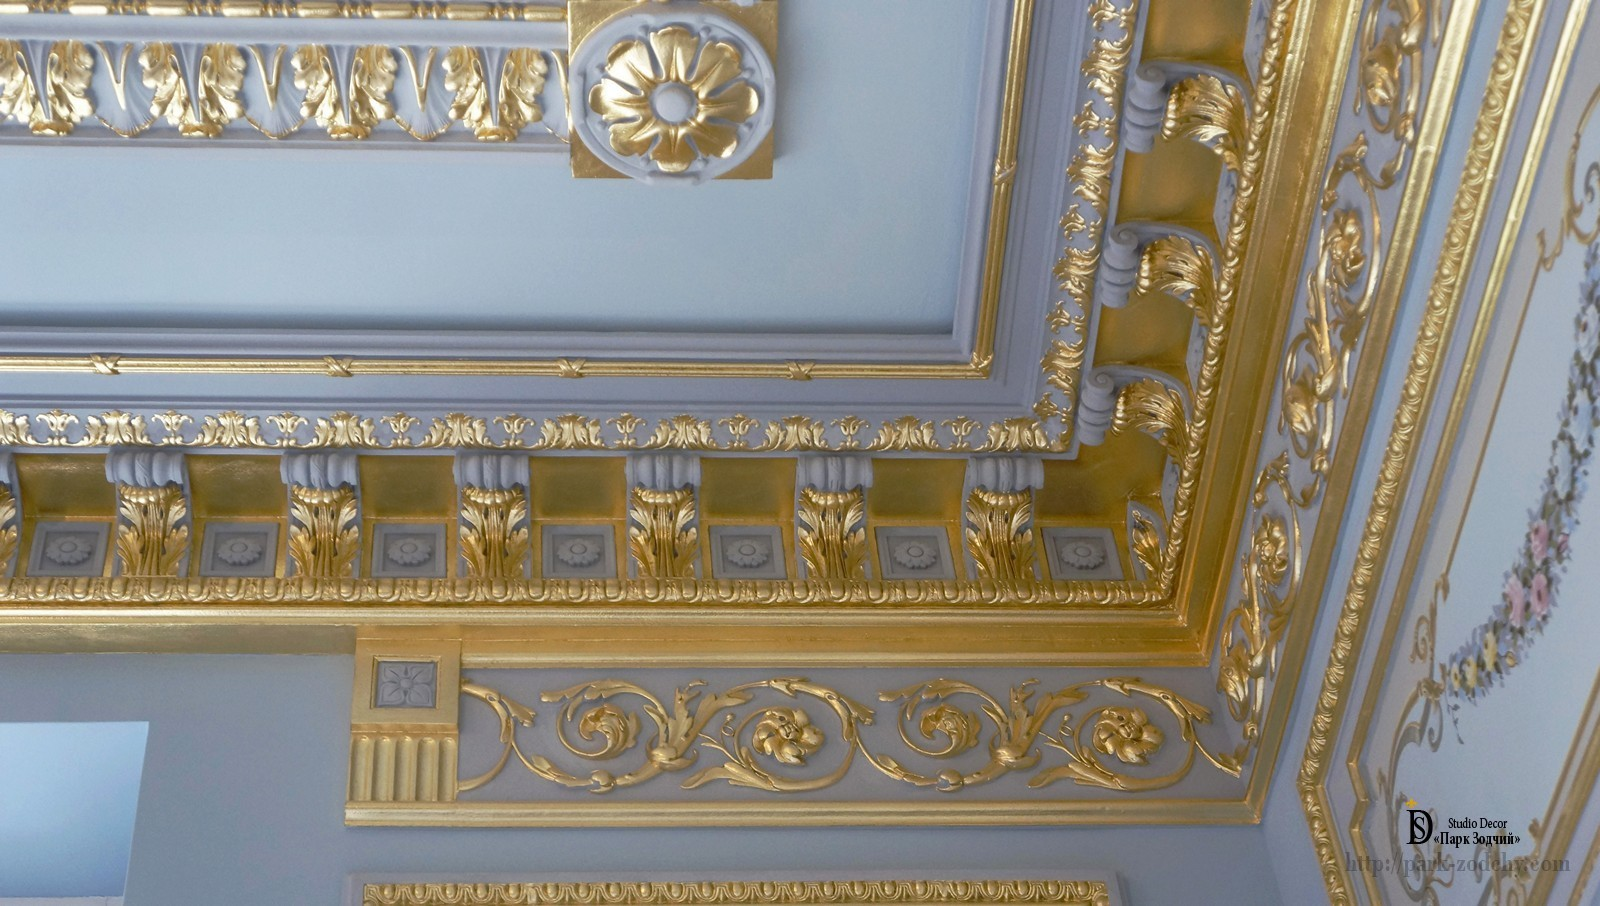 Gilding with gold leaf cornice of plaster moldings